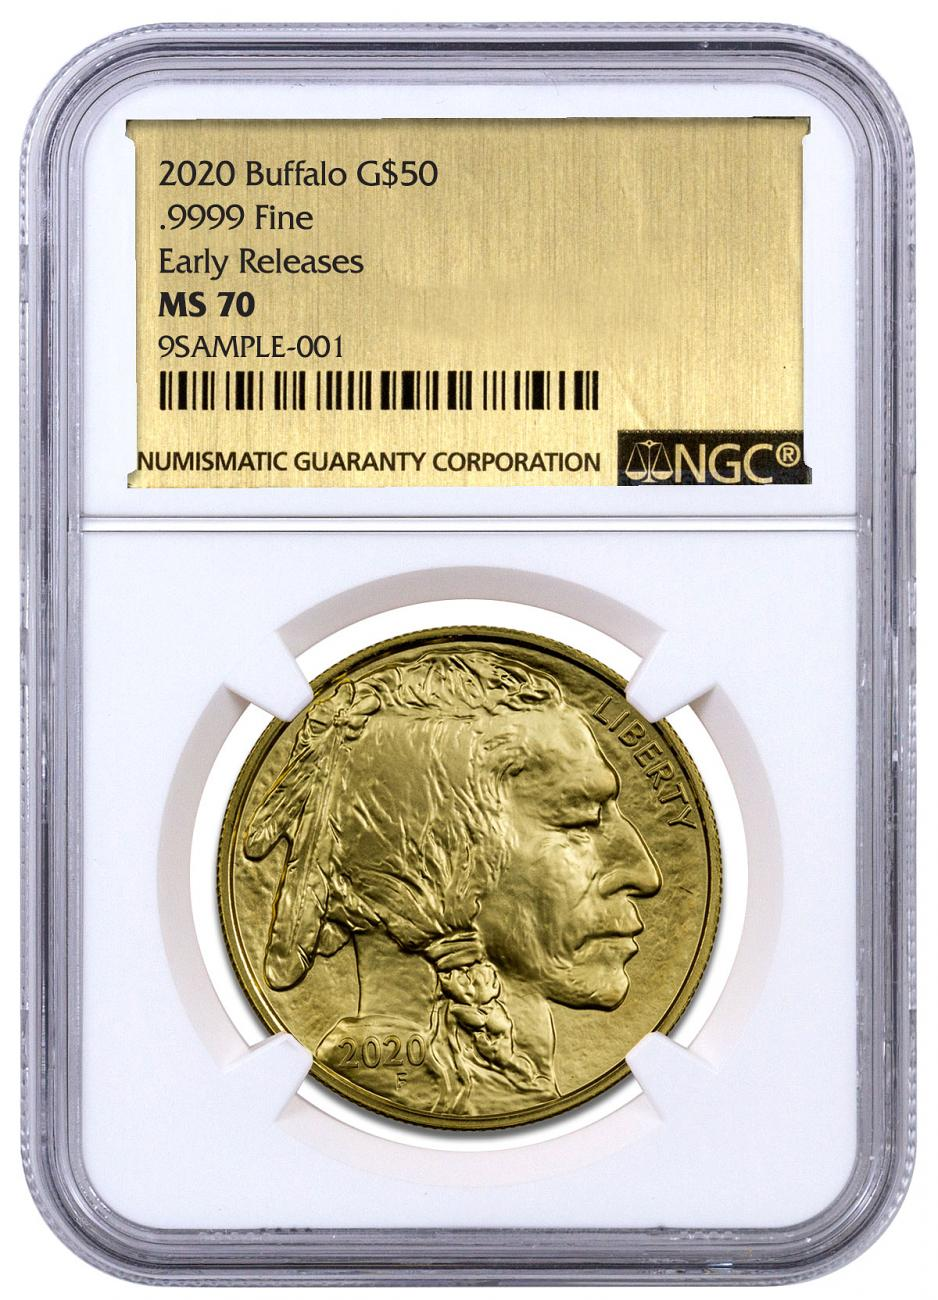 2020 1 oz Gold American Buffalo $50 Coin NGC MS70 ER Exclusive Gold Foil Label